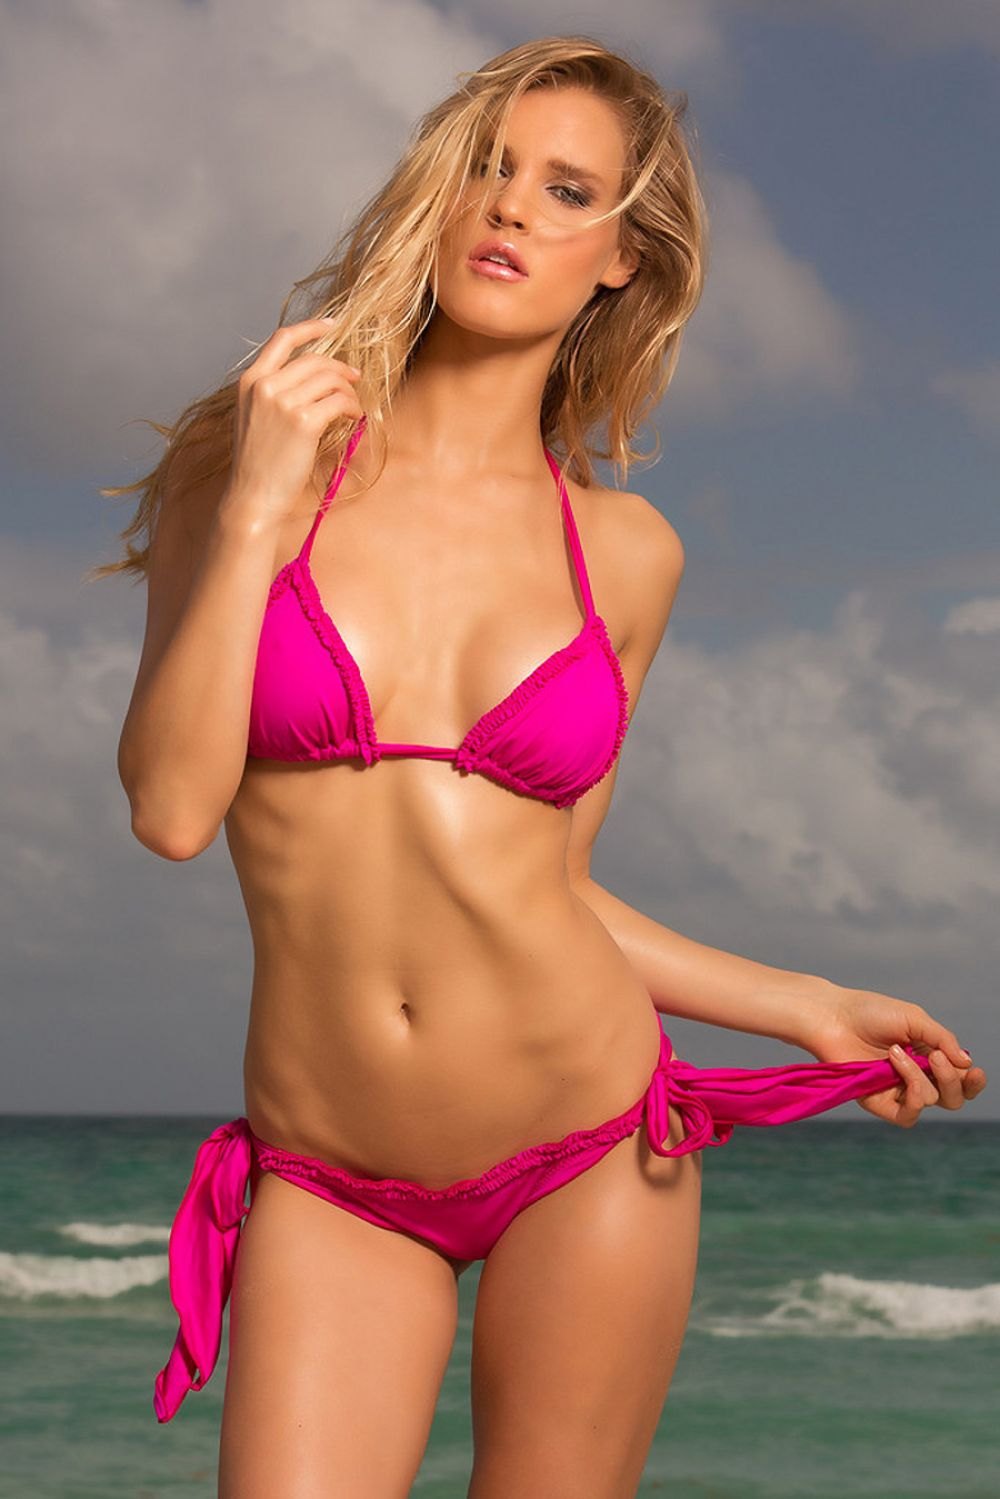 joy-corringan-summerlove-swimwear-2014-collection_22.jpg - 120.01 KB